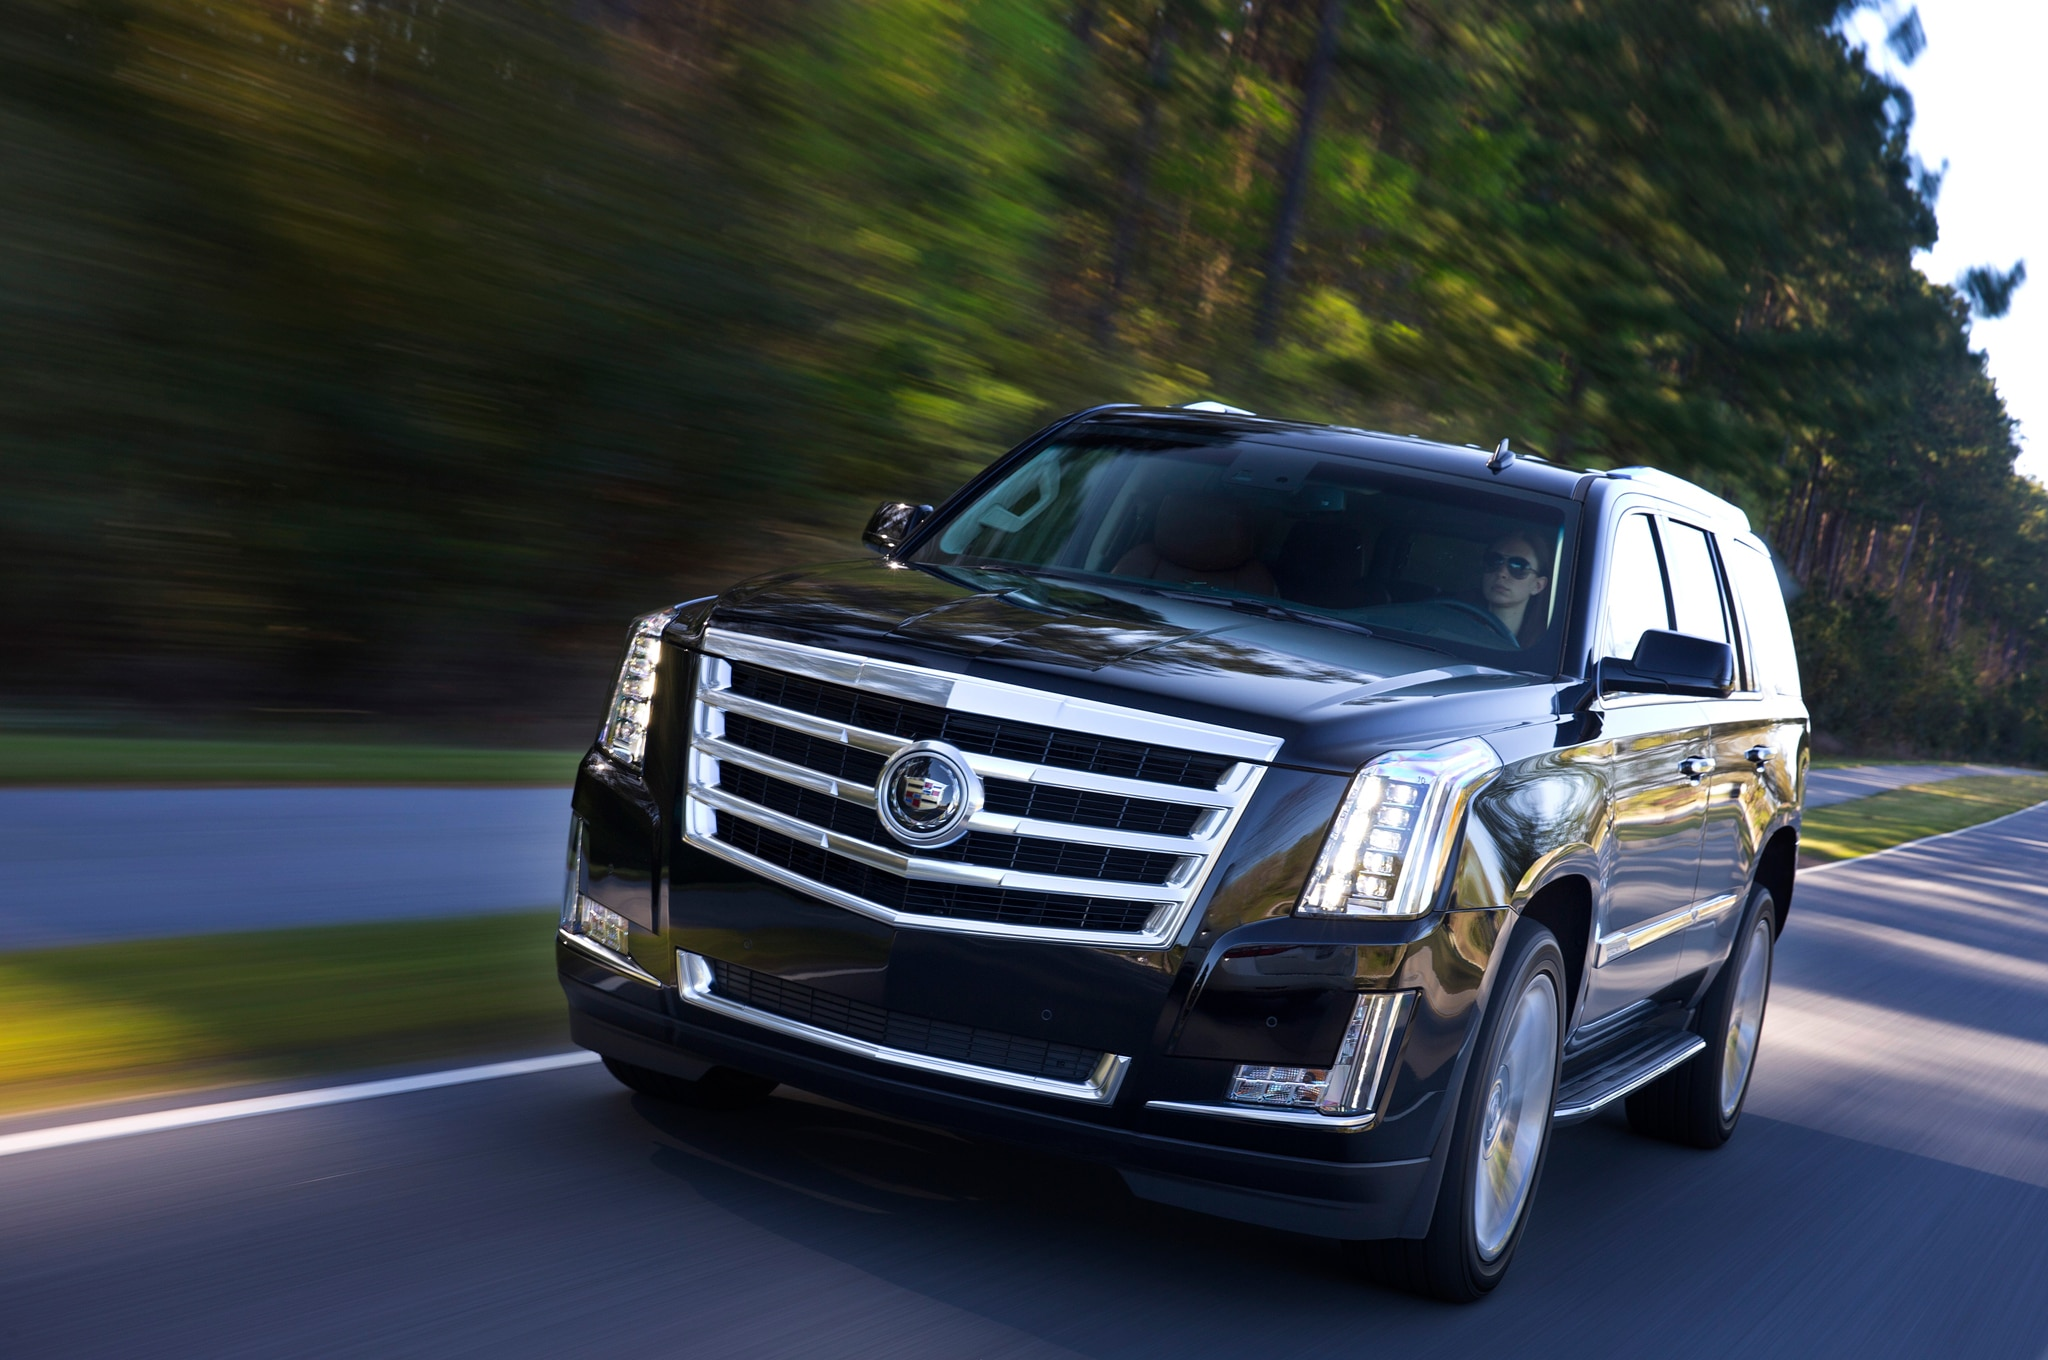 2015 Cadillac Escalade vs. 2015 Lincoln Navigator Comparison